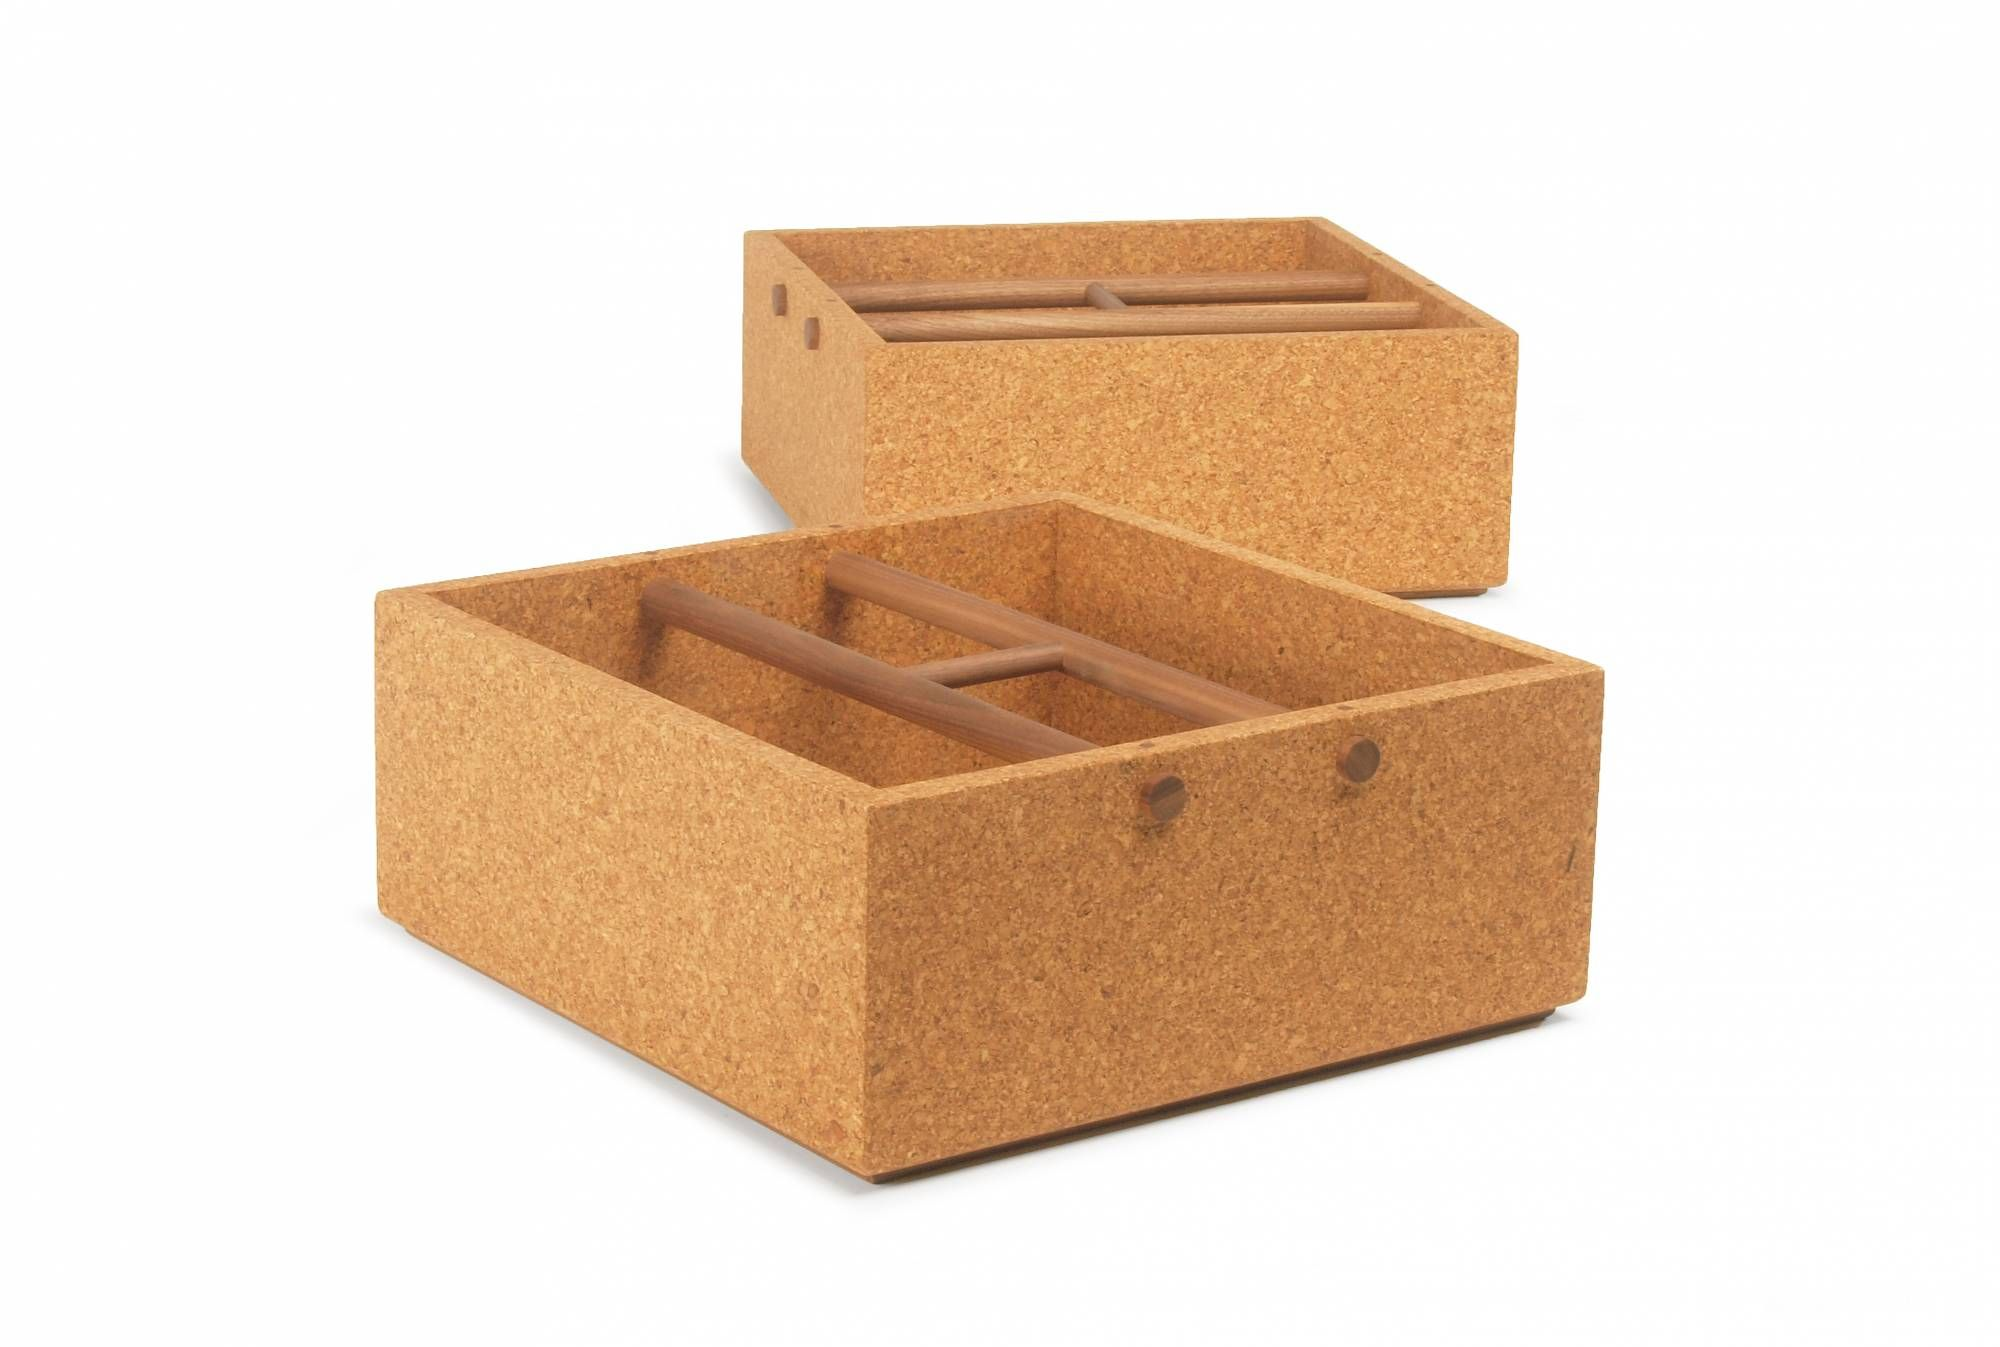 Corkbox (Square) By Skram Furniture